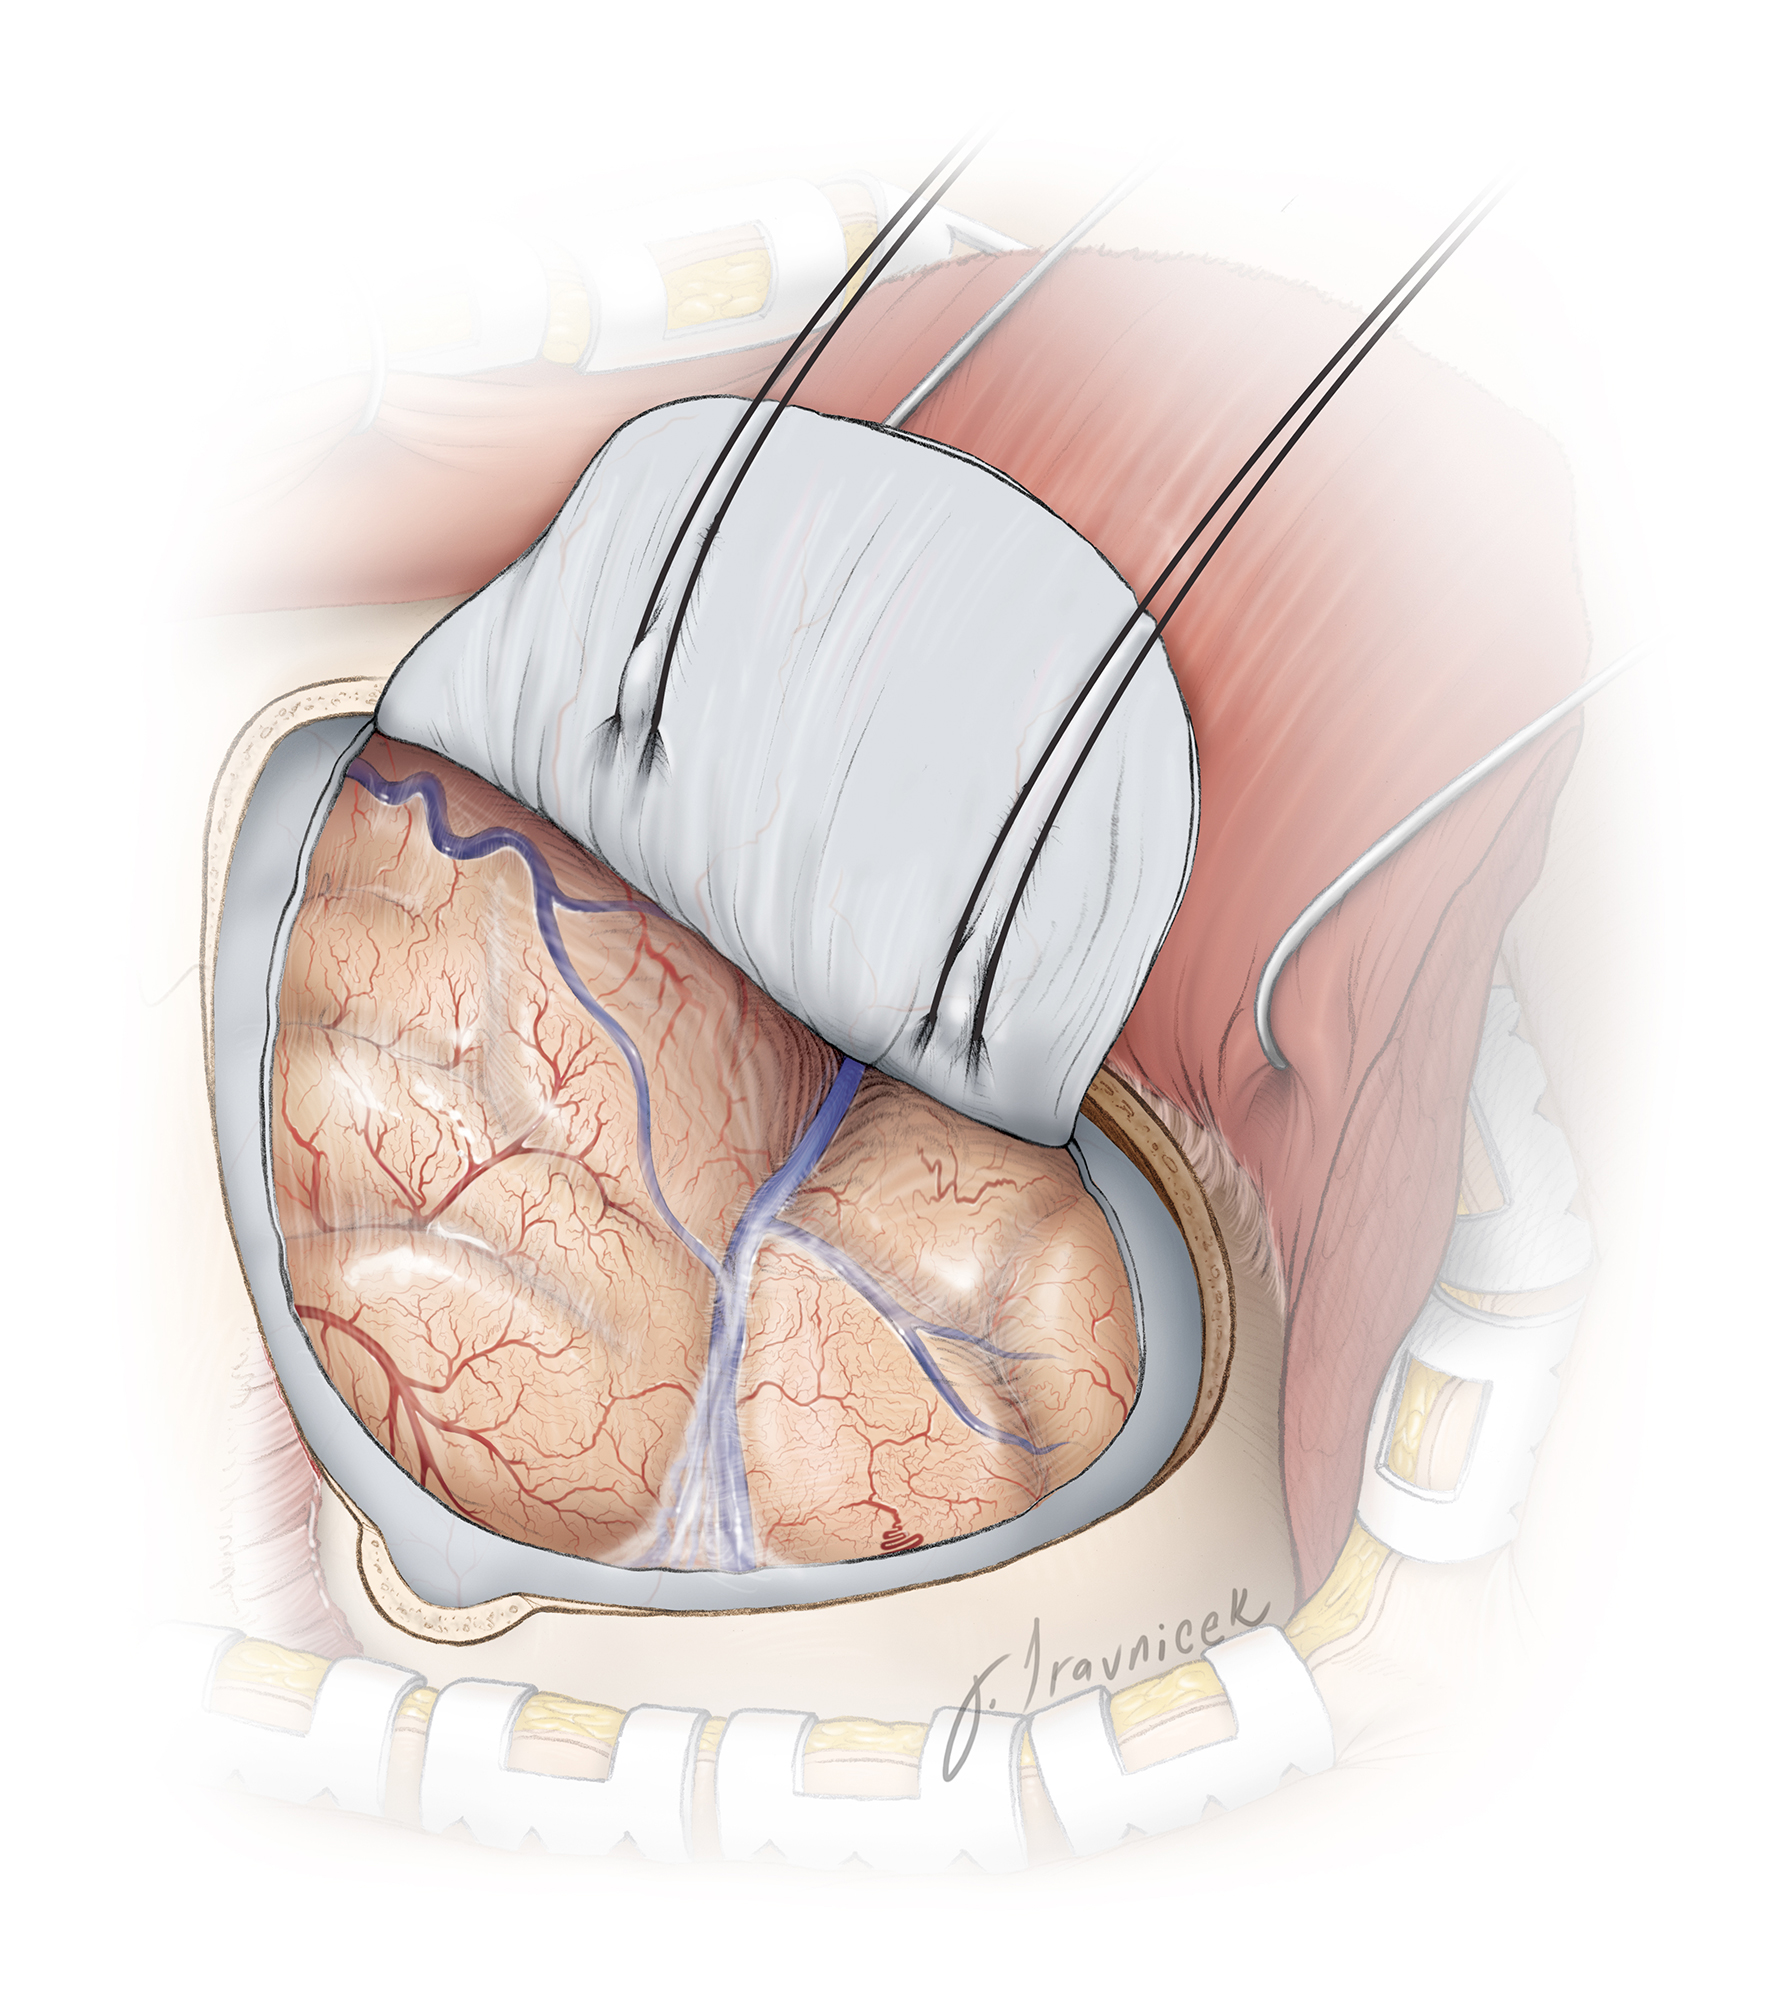 Figure 4: The breadth of the pterional craniotomy for this aneurysm type is illustrated. Significant frontal extension of the craniotomy is typically unnecessary. The lateral sphenoid wing is resected to the level of the superior orbital fissure.